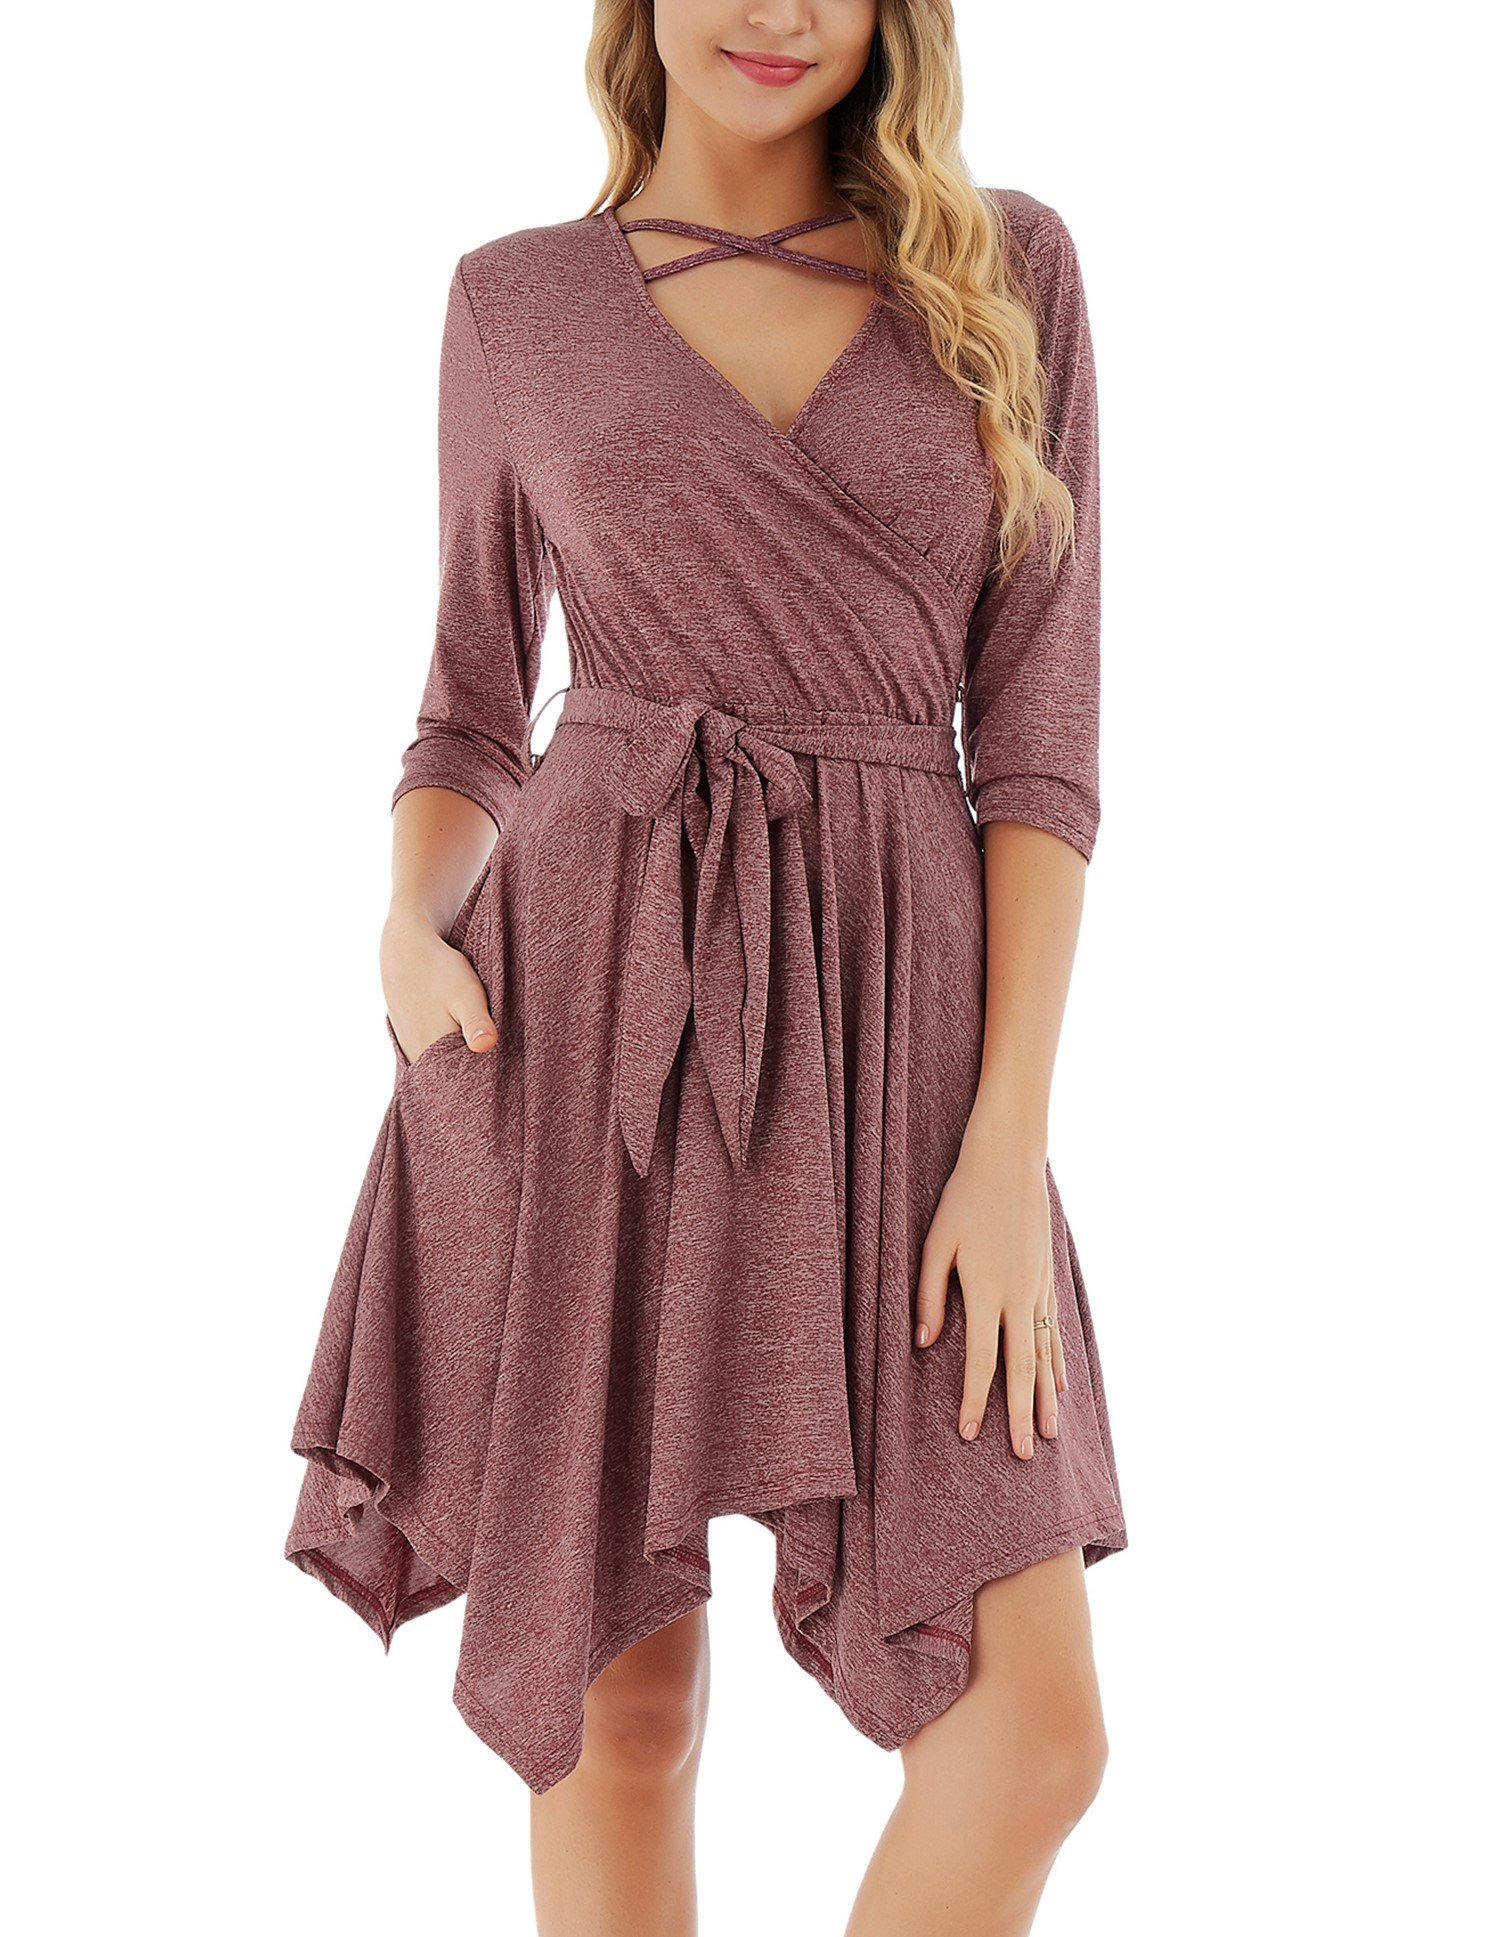 FISOUL Womens Tunic Dress Long Sleeve Criss Cross Casual Loose Party Swing Flared Midi Dress Wine Red S